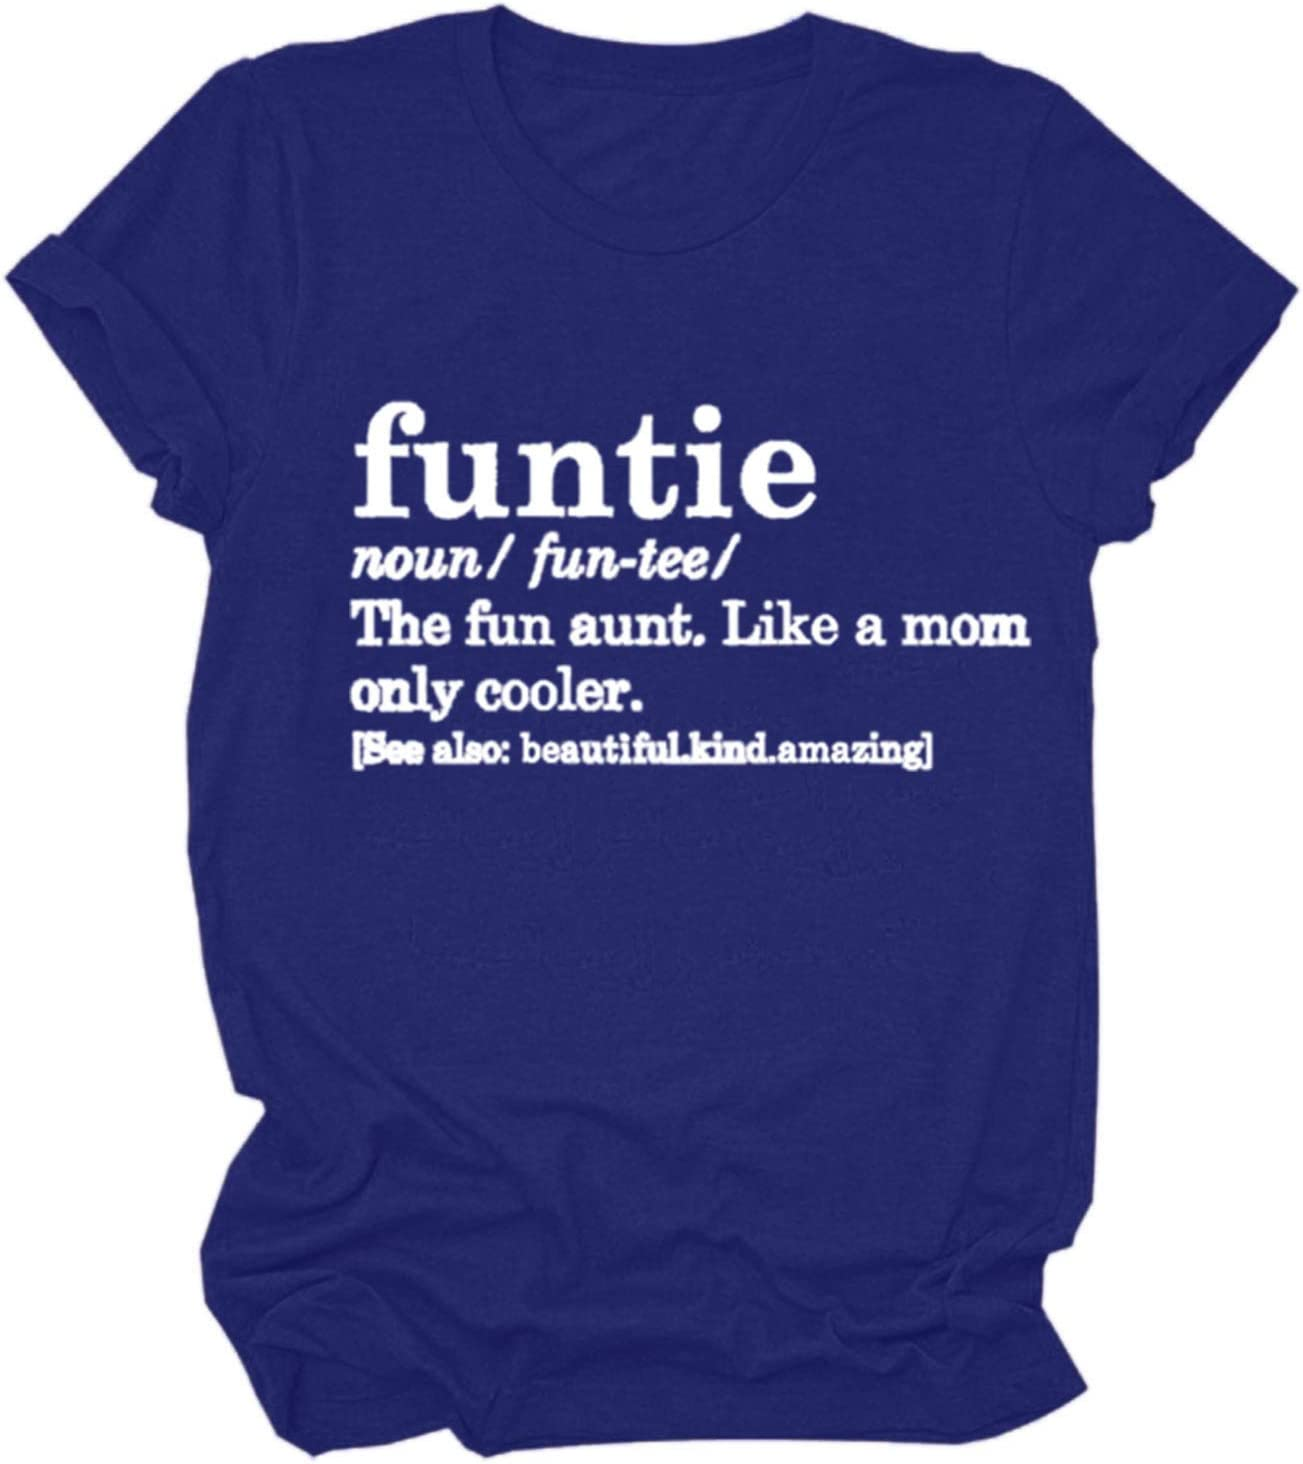 Shan-S Women Tshirts Funny Letter Causal Max 82% OFF Saying T-Shirt Regular discount Printed